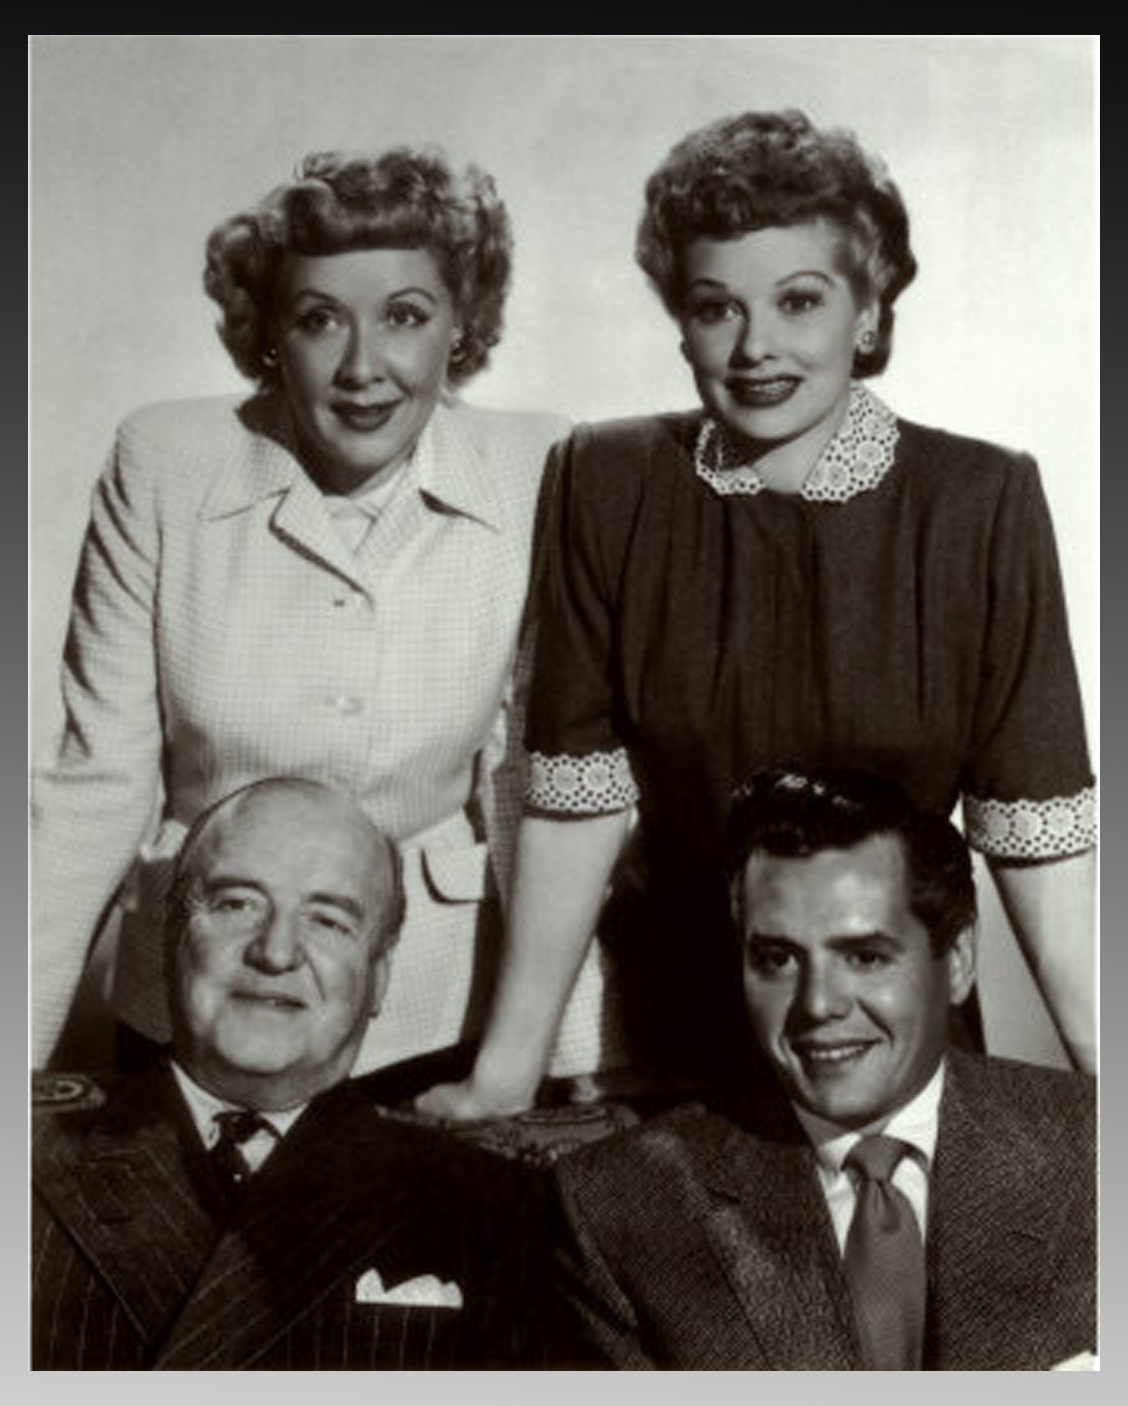 Ethel I Love Lucy